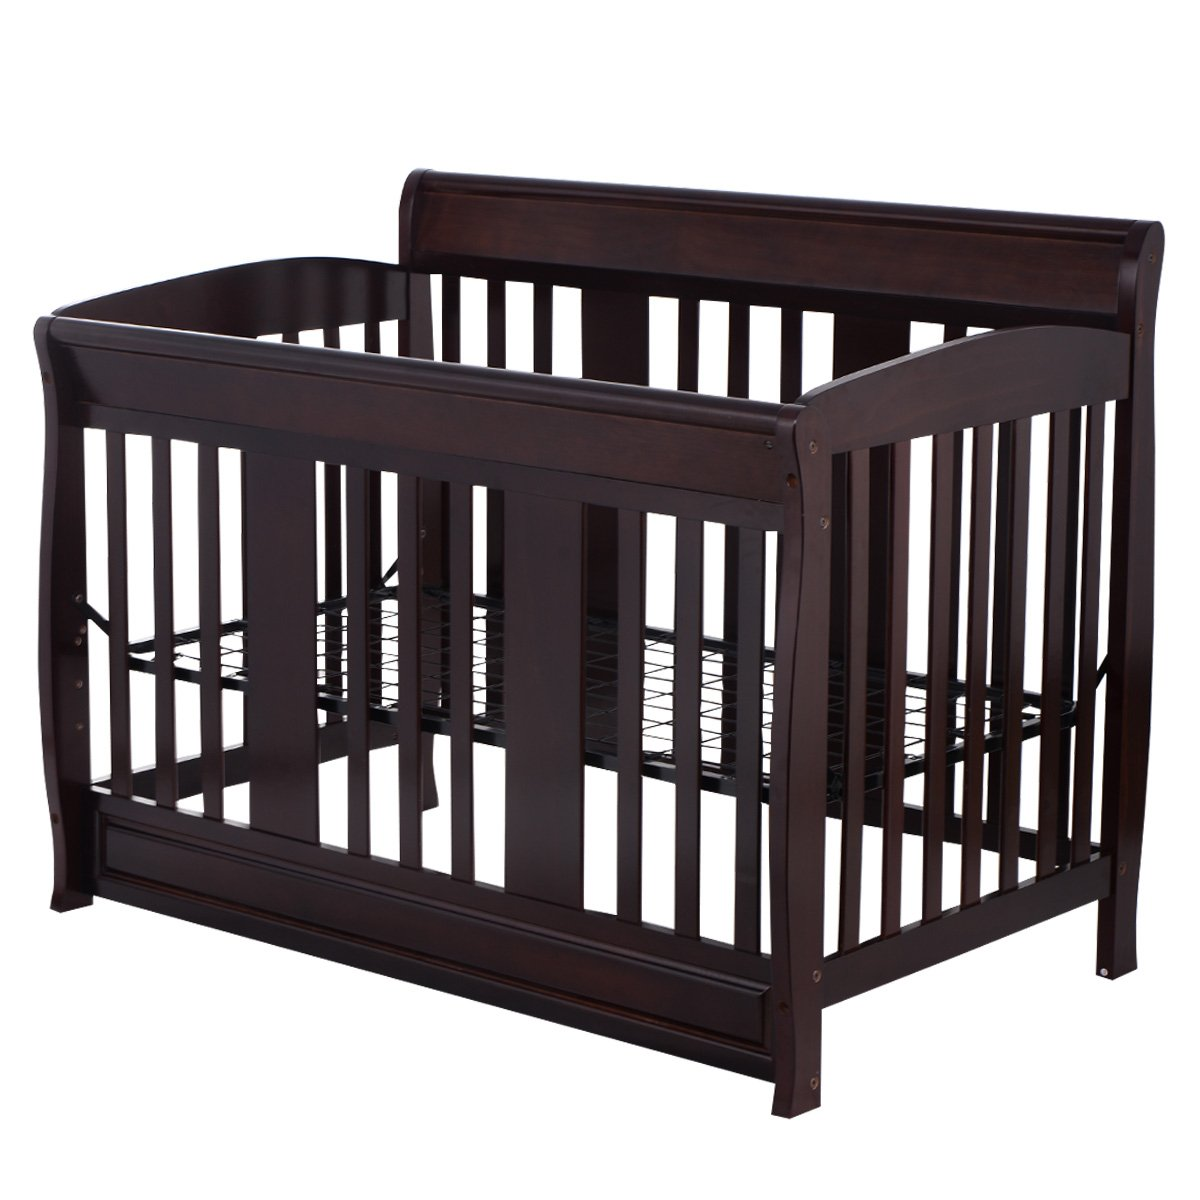 Costzon Baby Convertible Crib Toddler Nursery Bed Furniture Wooden